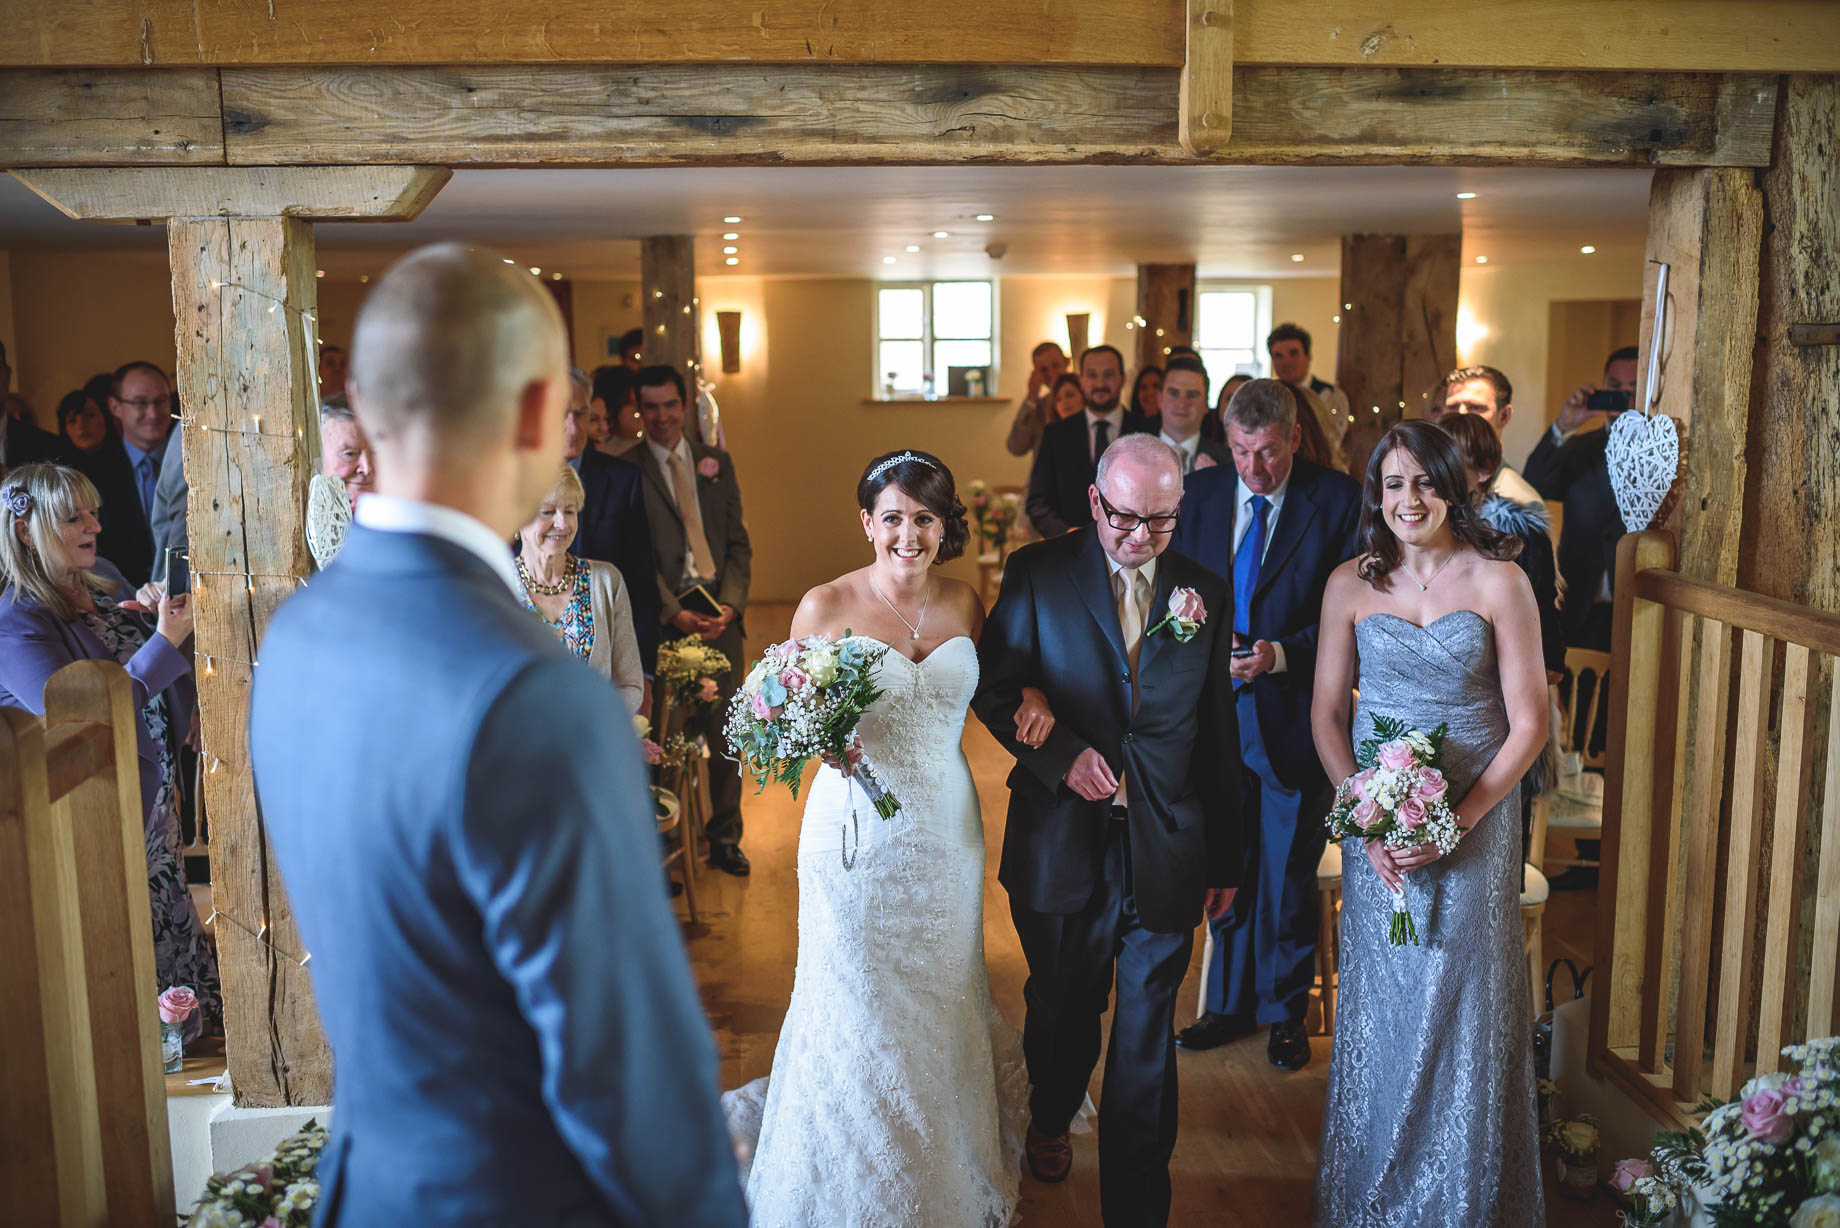 Bury Court Barn wedding photography - Guy Collier Photography - Karen and John (52 of 166)